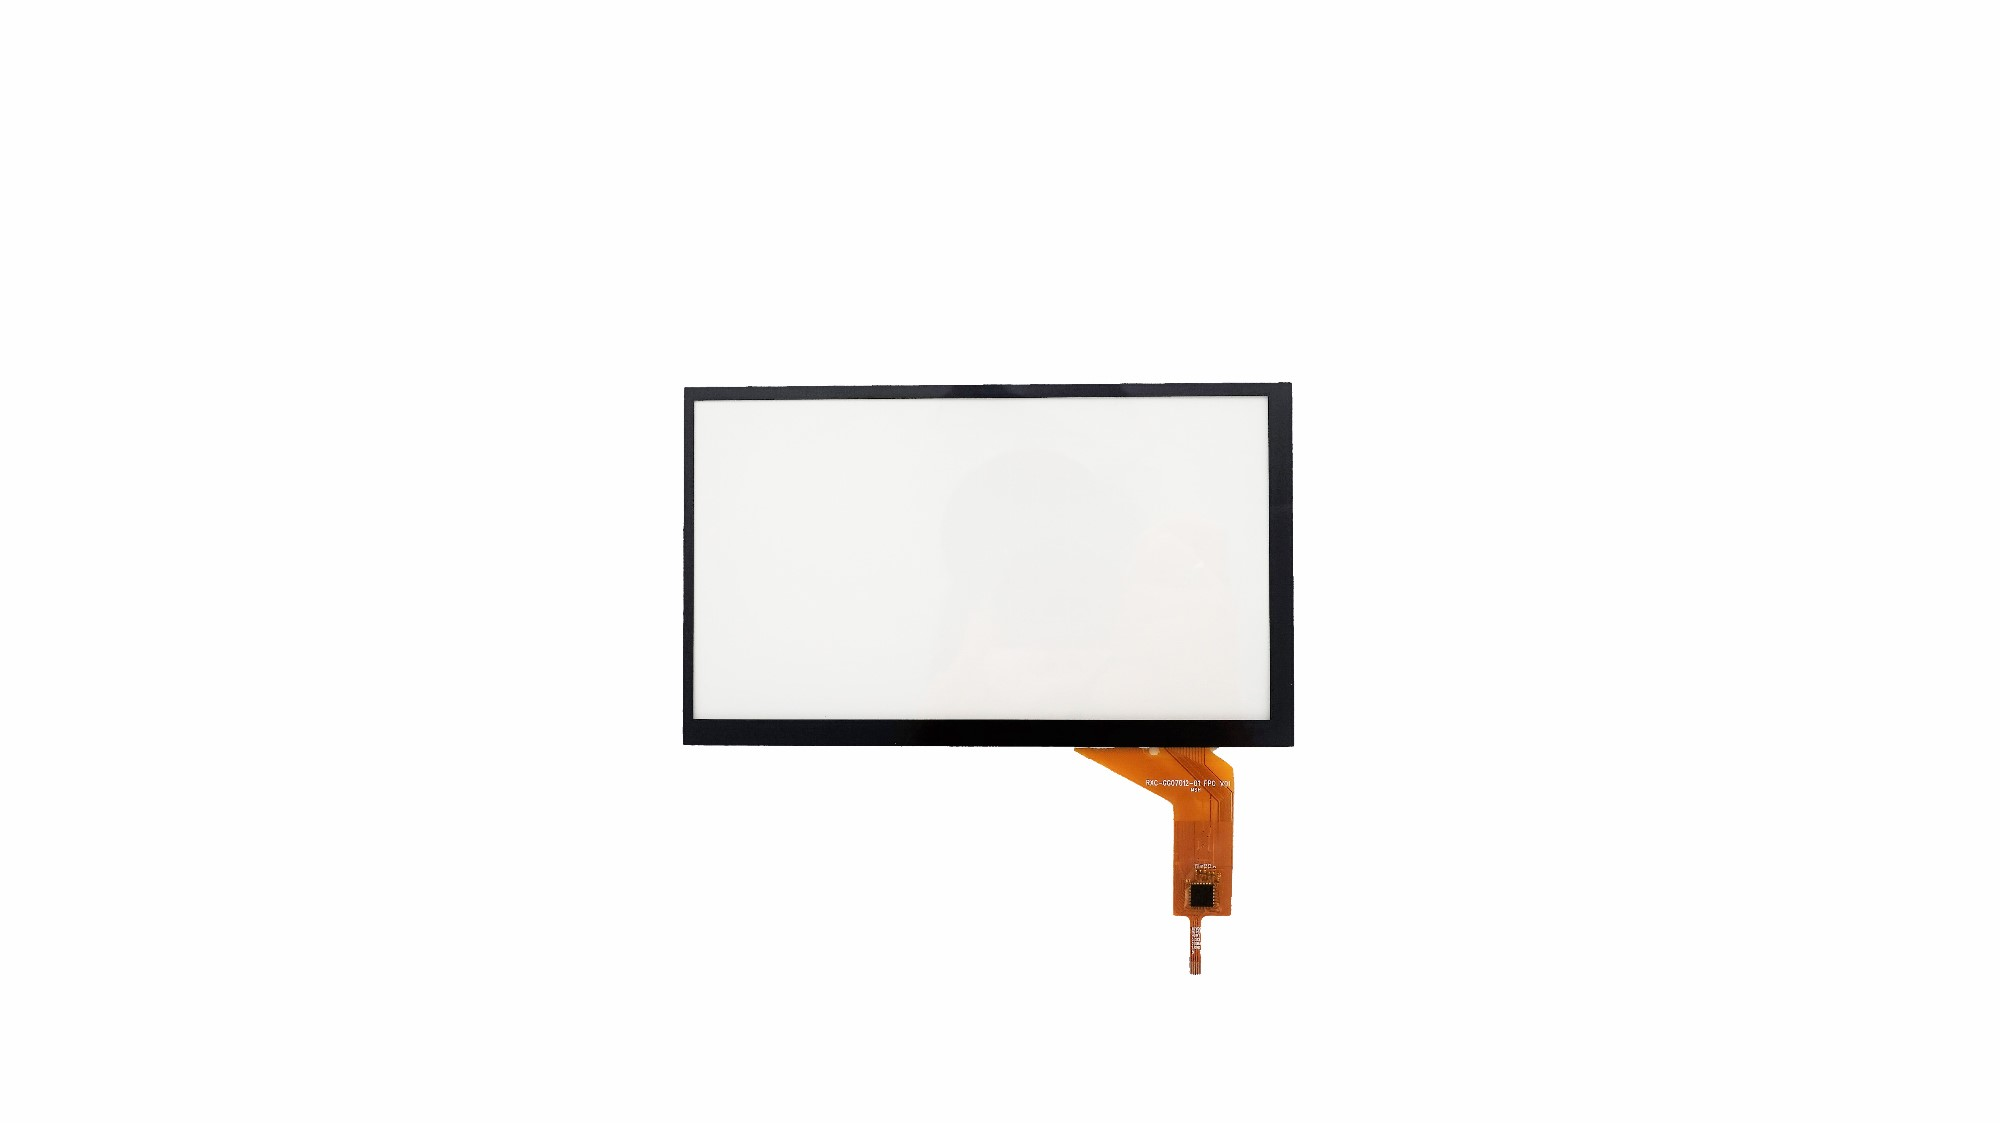 Custom China 7.0 Inch Oem Pg Capacitive Touch Screen For Education Devices, 7.0 Inch Oem Pg Capacitive Touch Screen For Education Devices Factory, 7.0 Inch Oem Pg Capacitive Touch Screen For Education Devices OEM